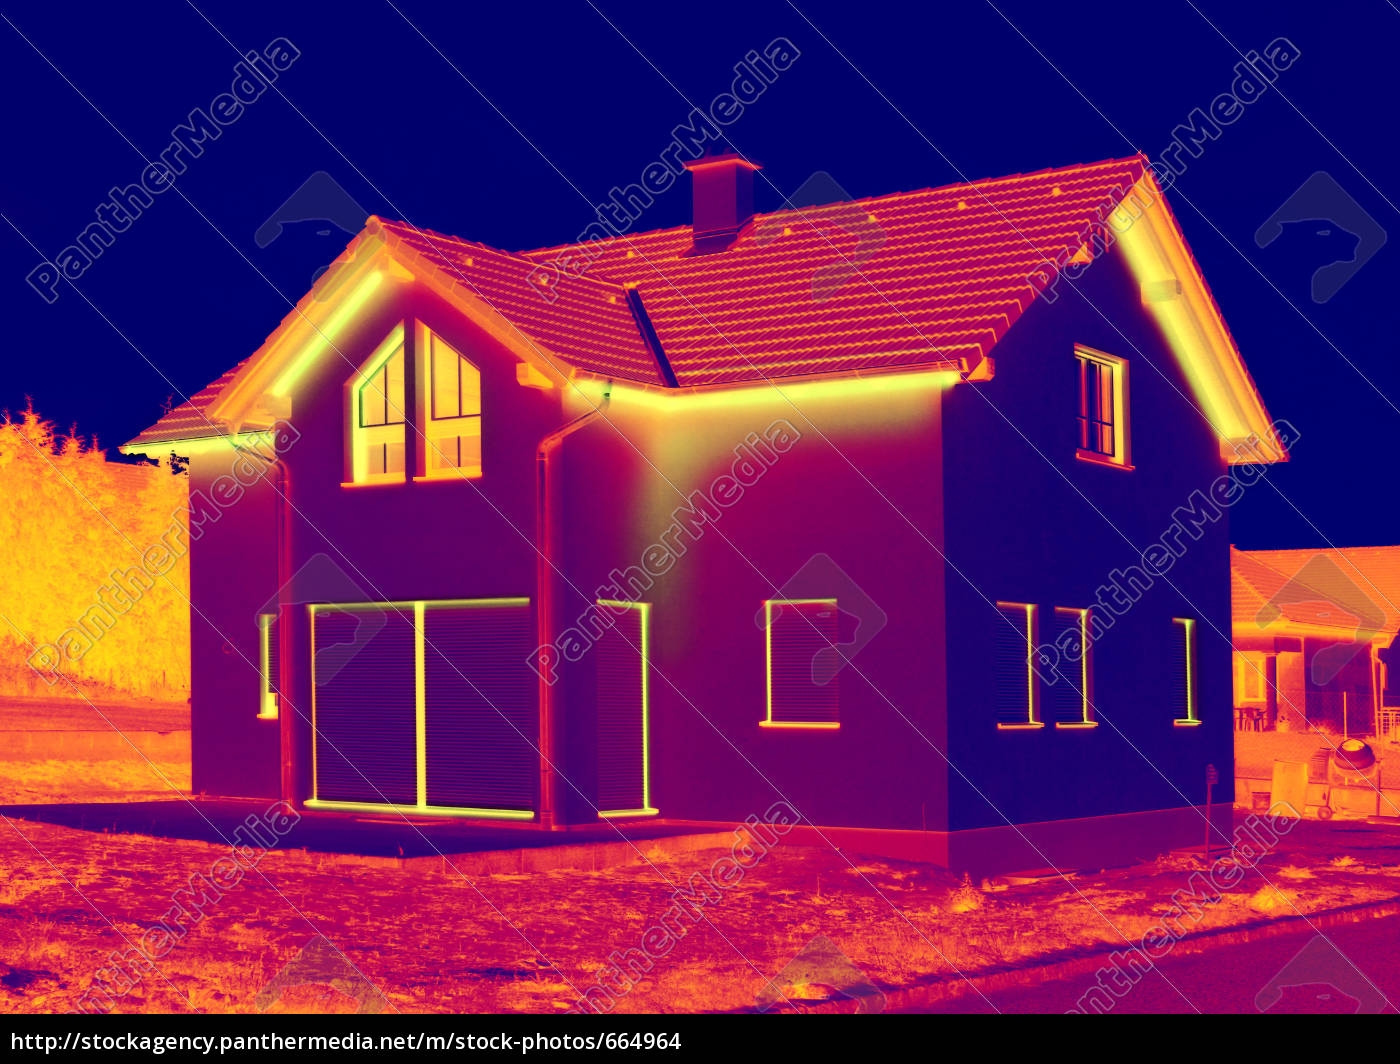 thermography - 664964